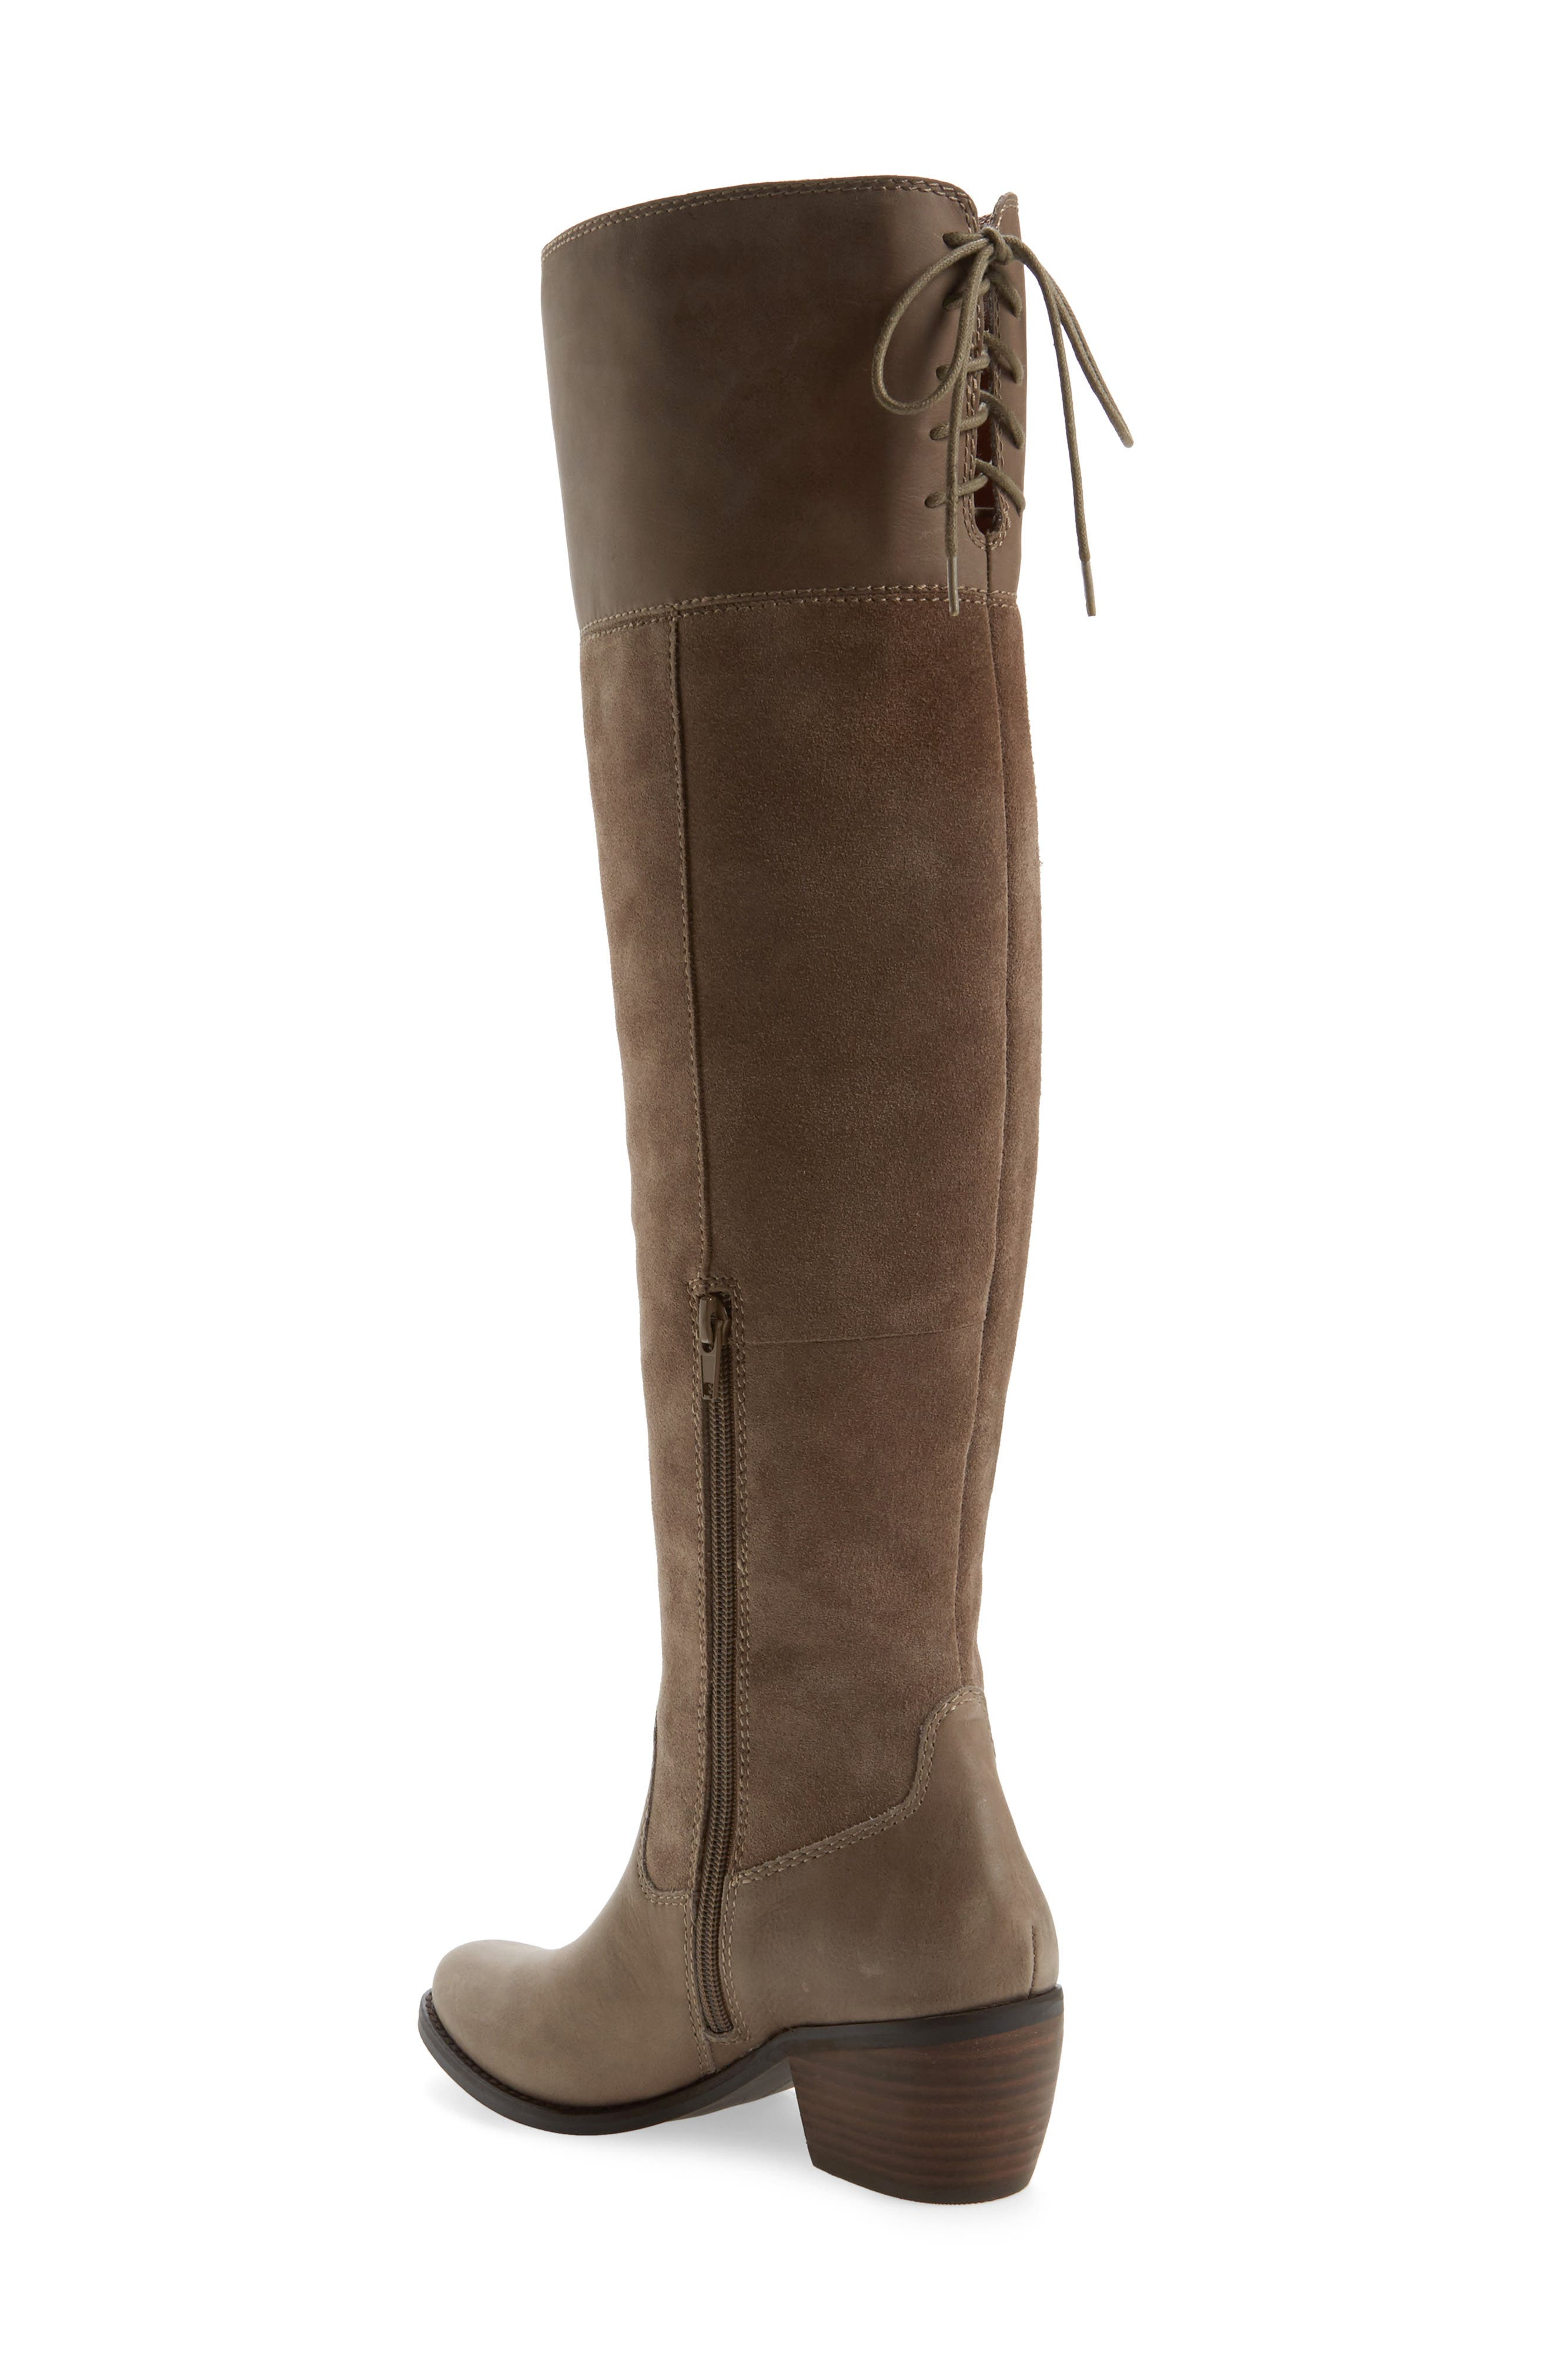 Komah Over the Knee Boot,                             Alternate thumbnail 2, color,                             Brindle Leather